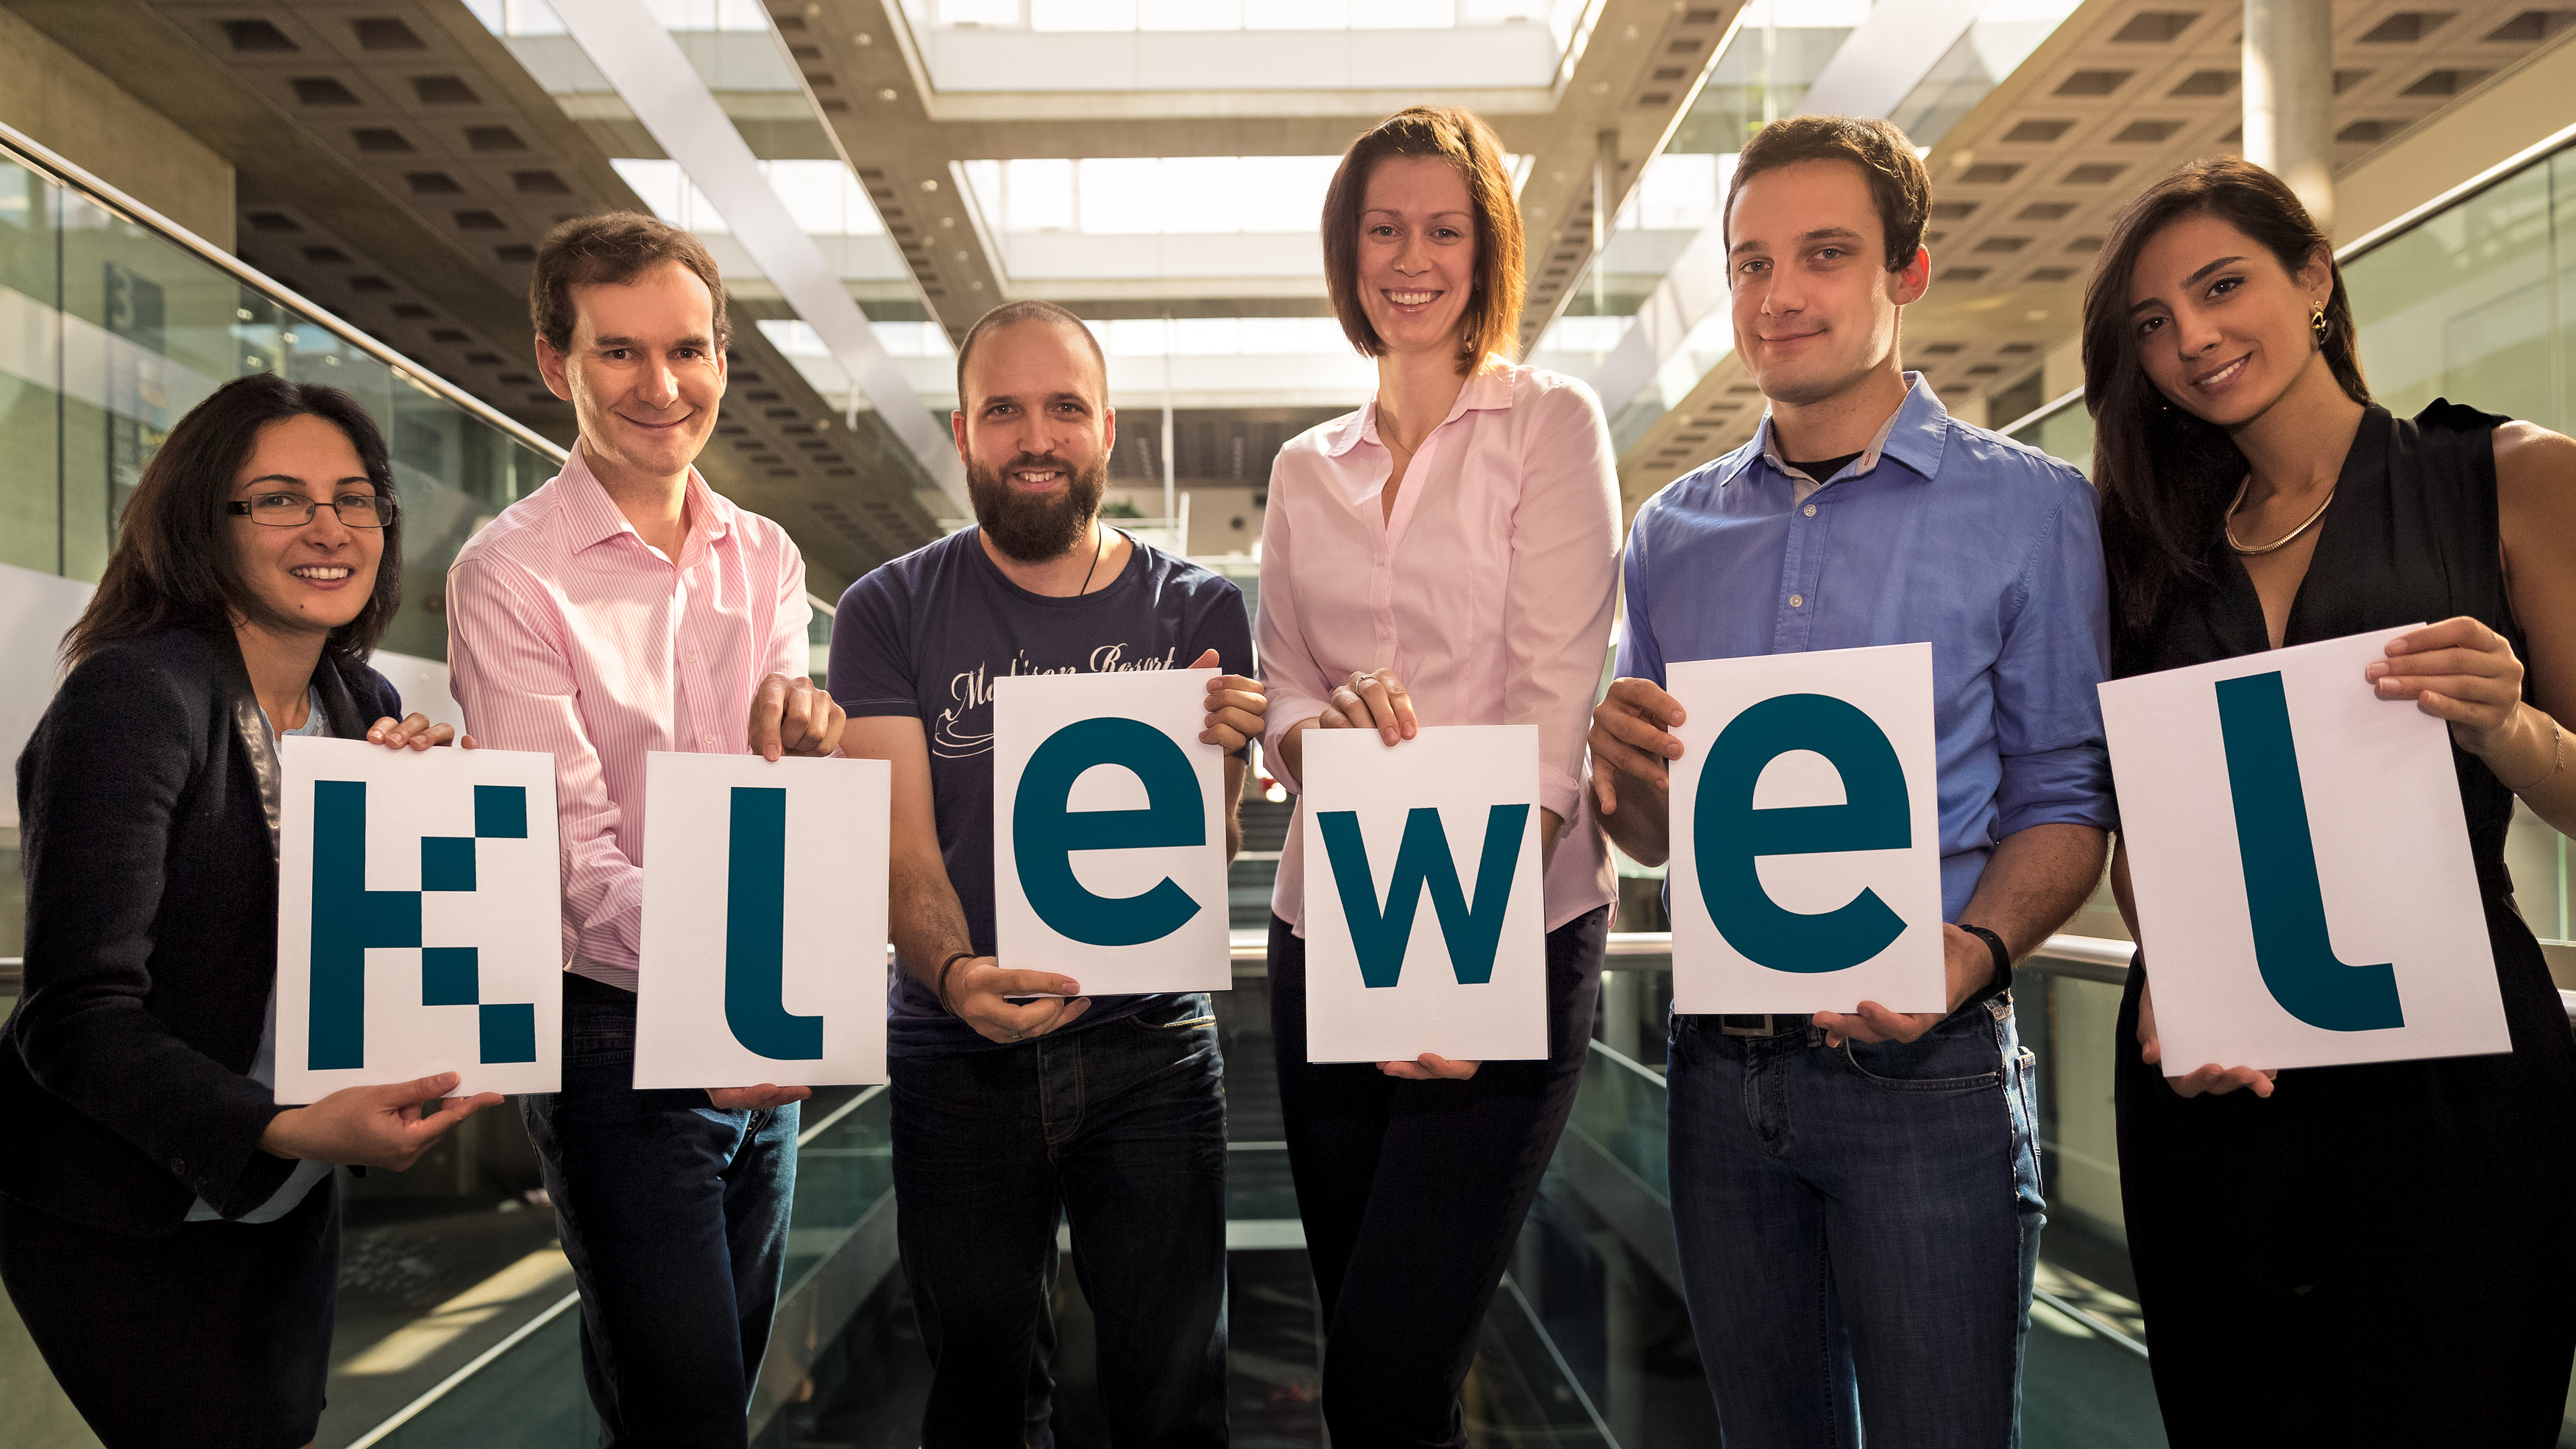 Klewel-team-003-2014-07